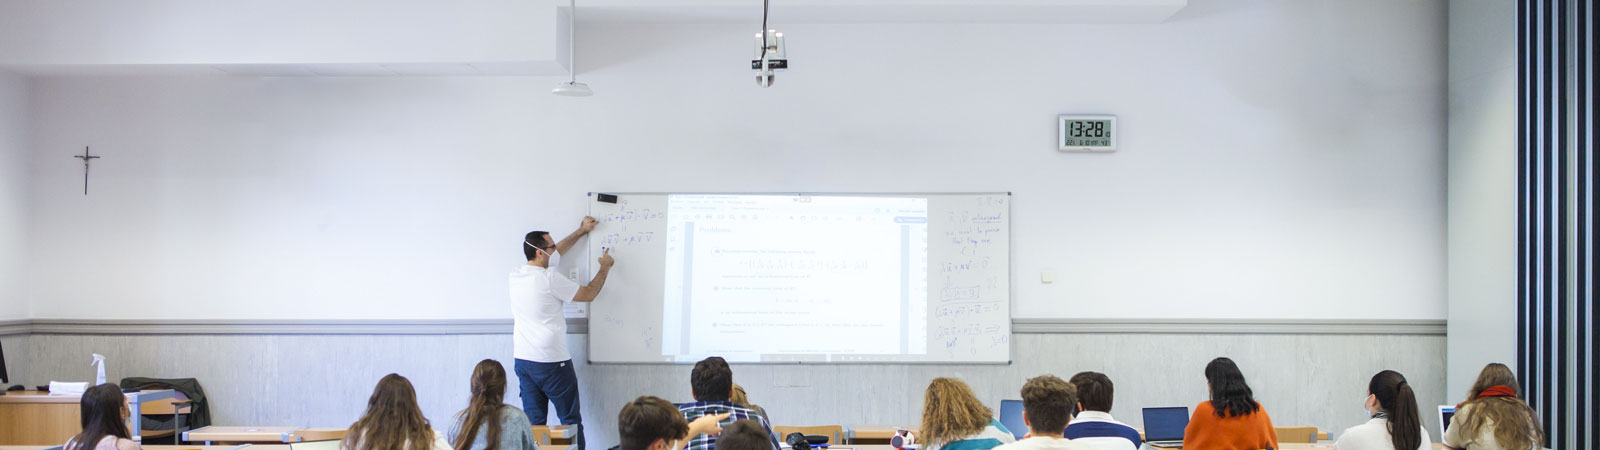 A teacher is presenting in front of a socially distanced classroom. The Beamforming Microphone and PTZ camera is visible, suspended from the ceiling.